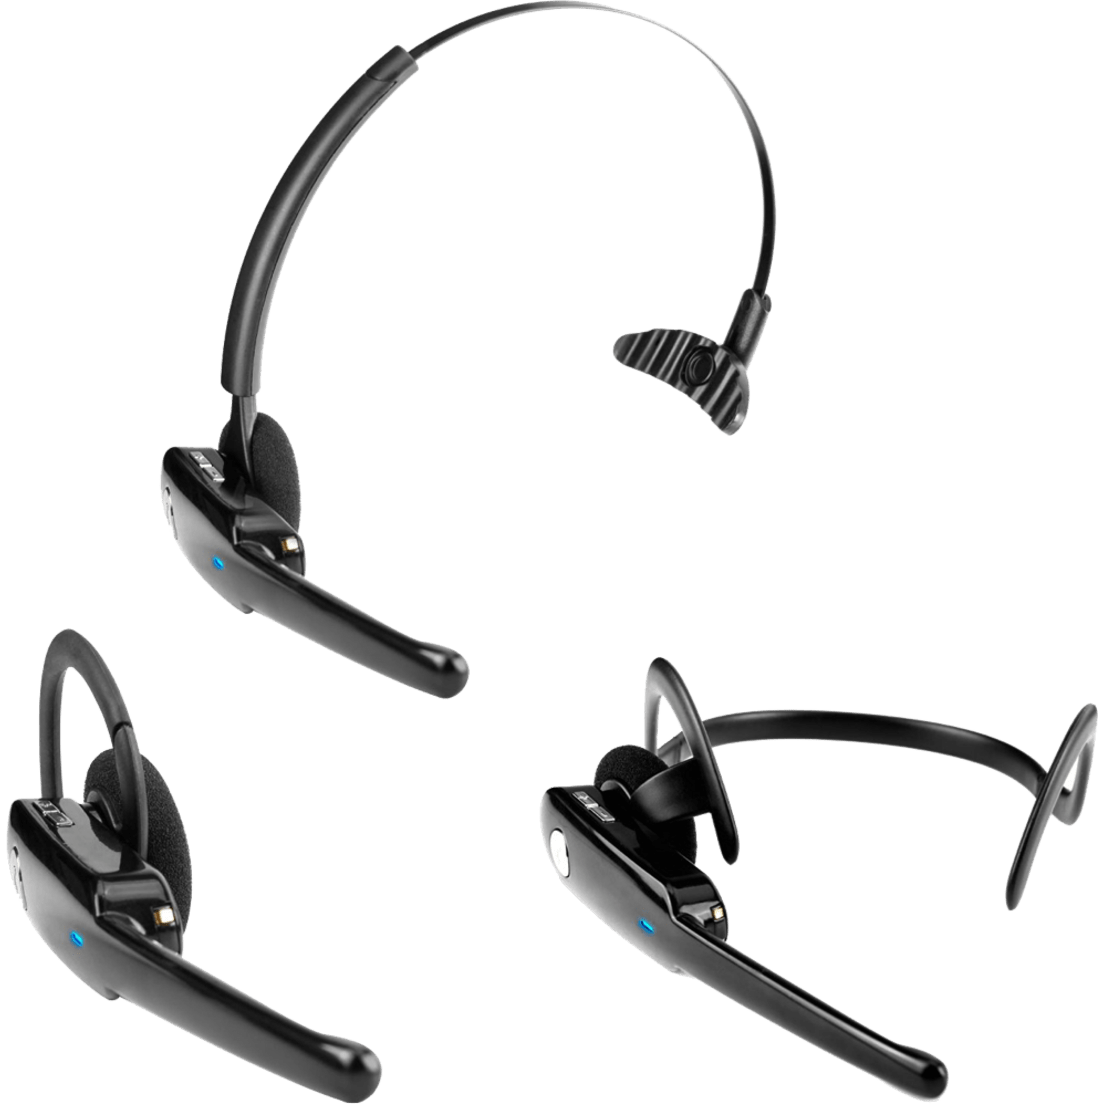 Go Groove 3-in-1 Bluetooth Headset with Charging Base 29f0978f0f10